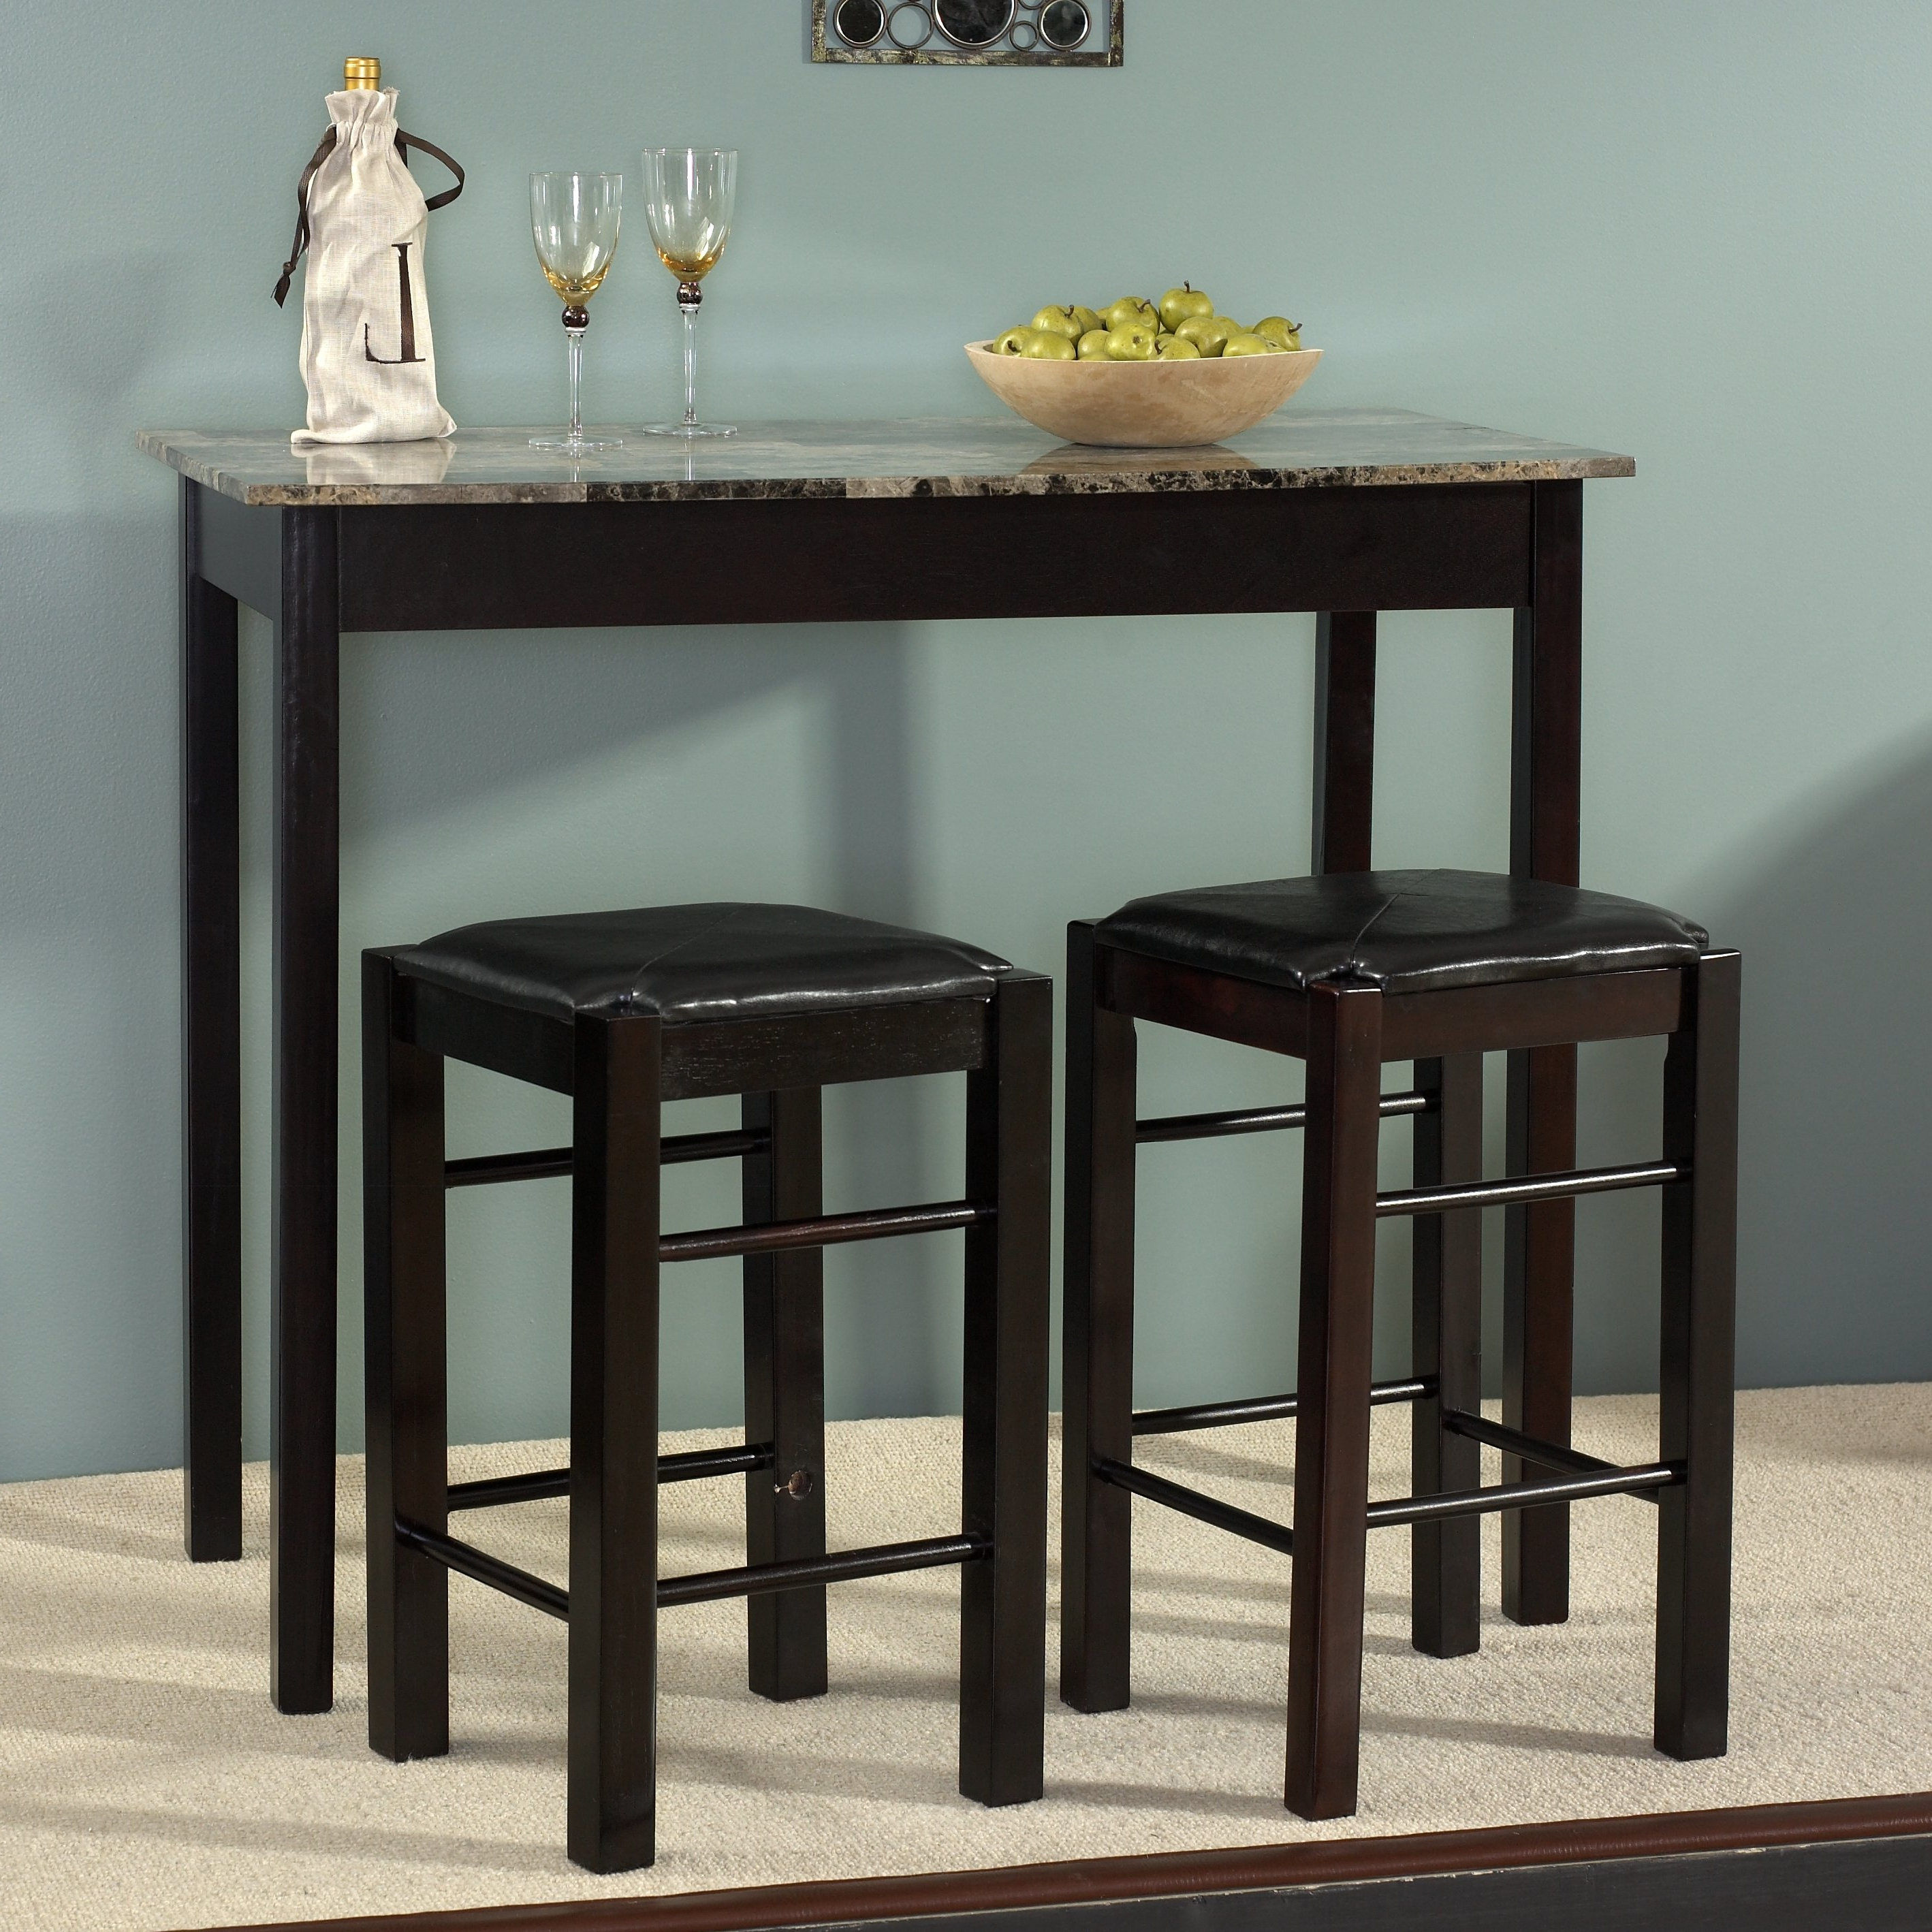 Weatherholt Dining Tables With Regard To Current Sheetz 3 Piece Counter Height Dining Set (View 16 of 20)